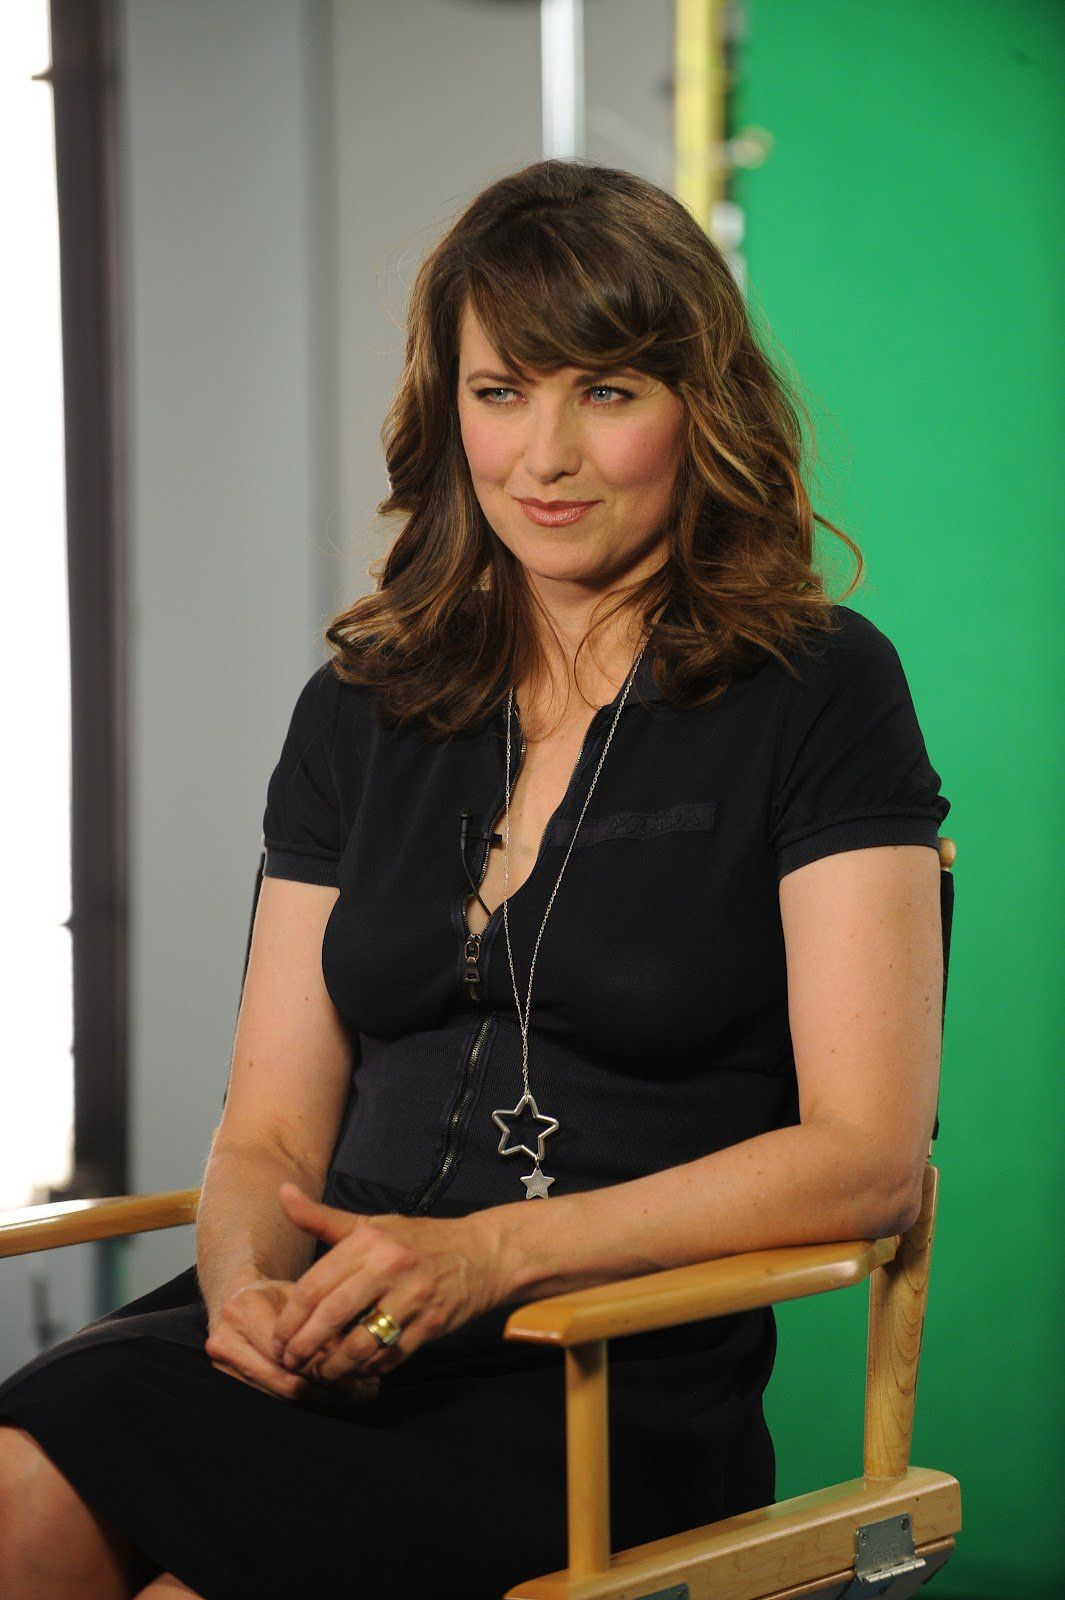 Lucy Lawless Hot Pics photo 13